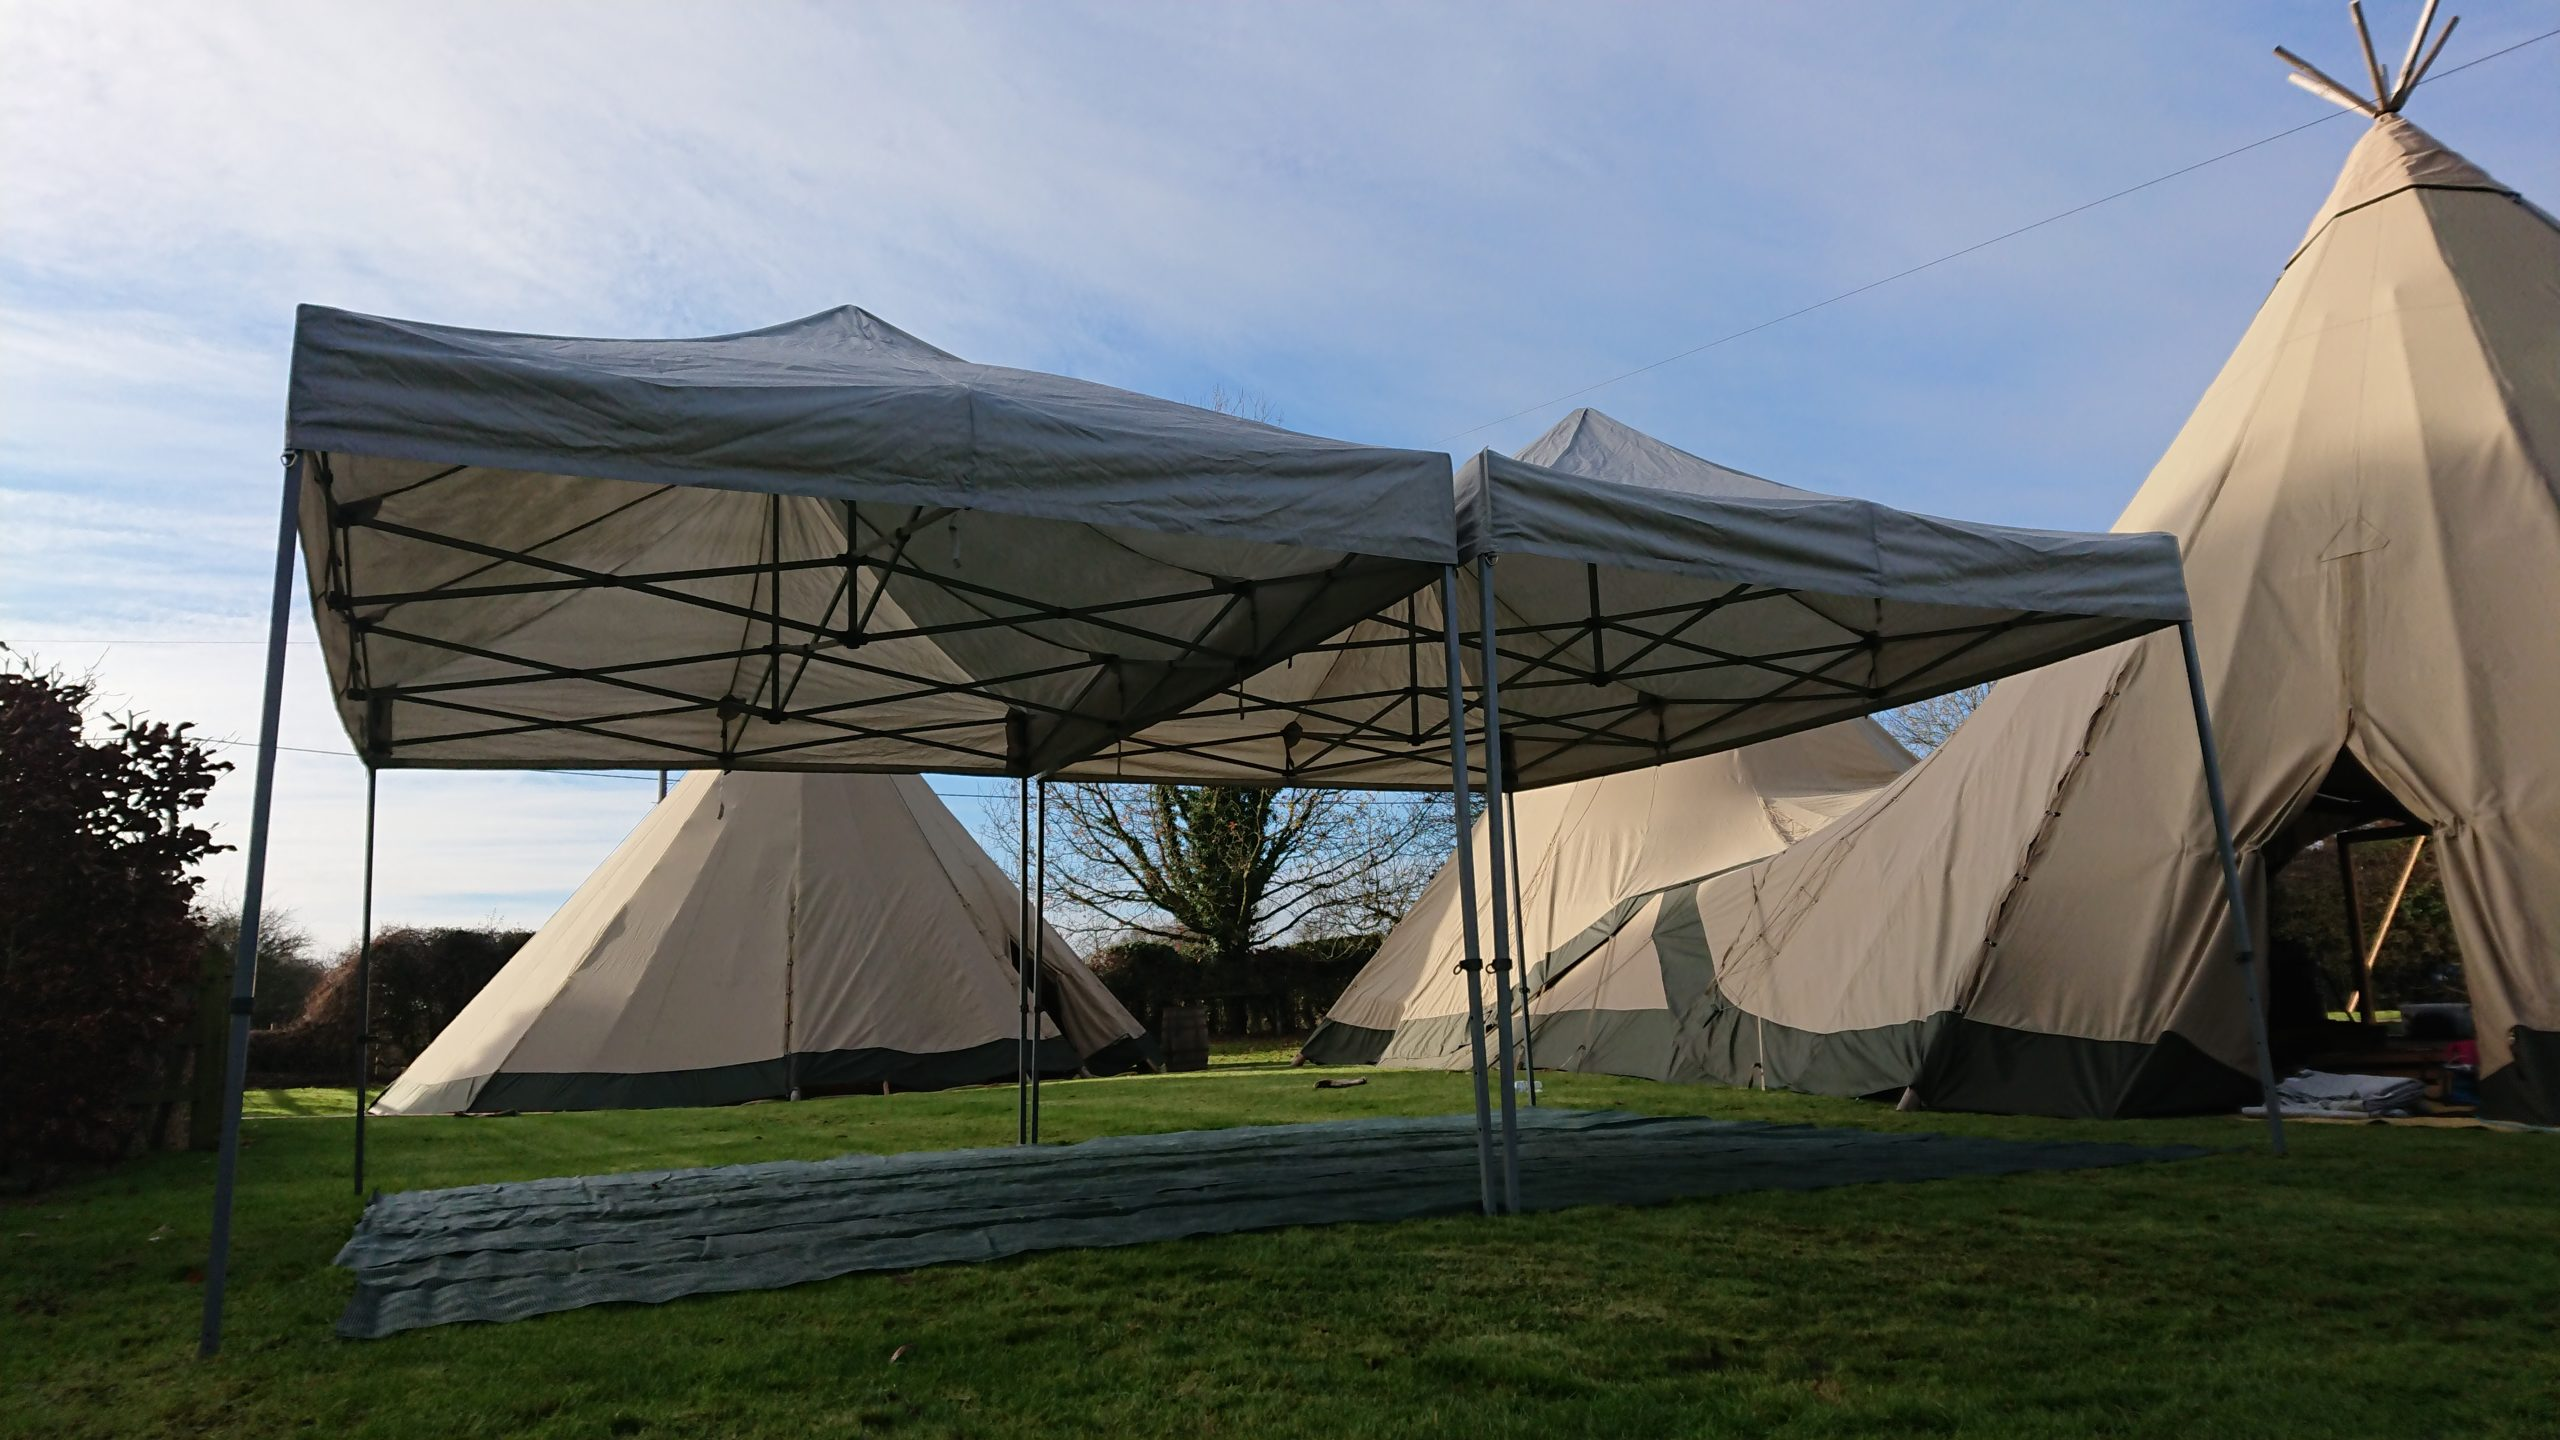 4.5 x 6 metre catering tent by Cotswold Tipis